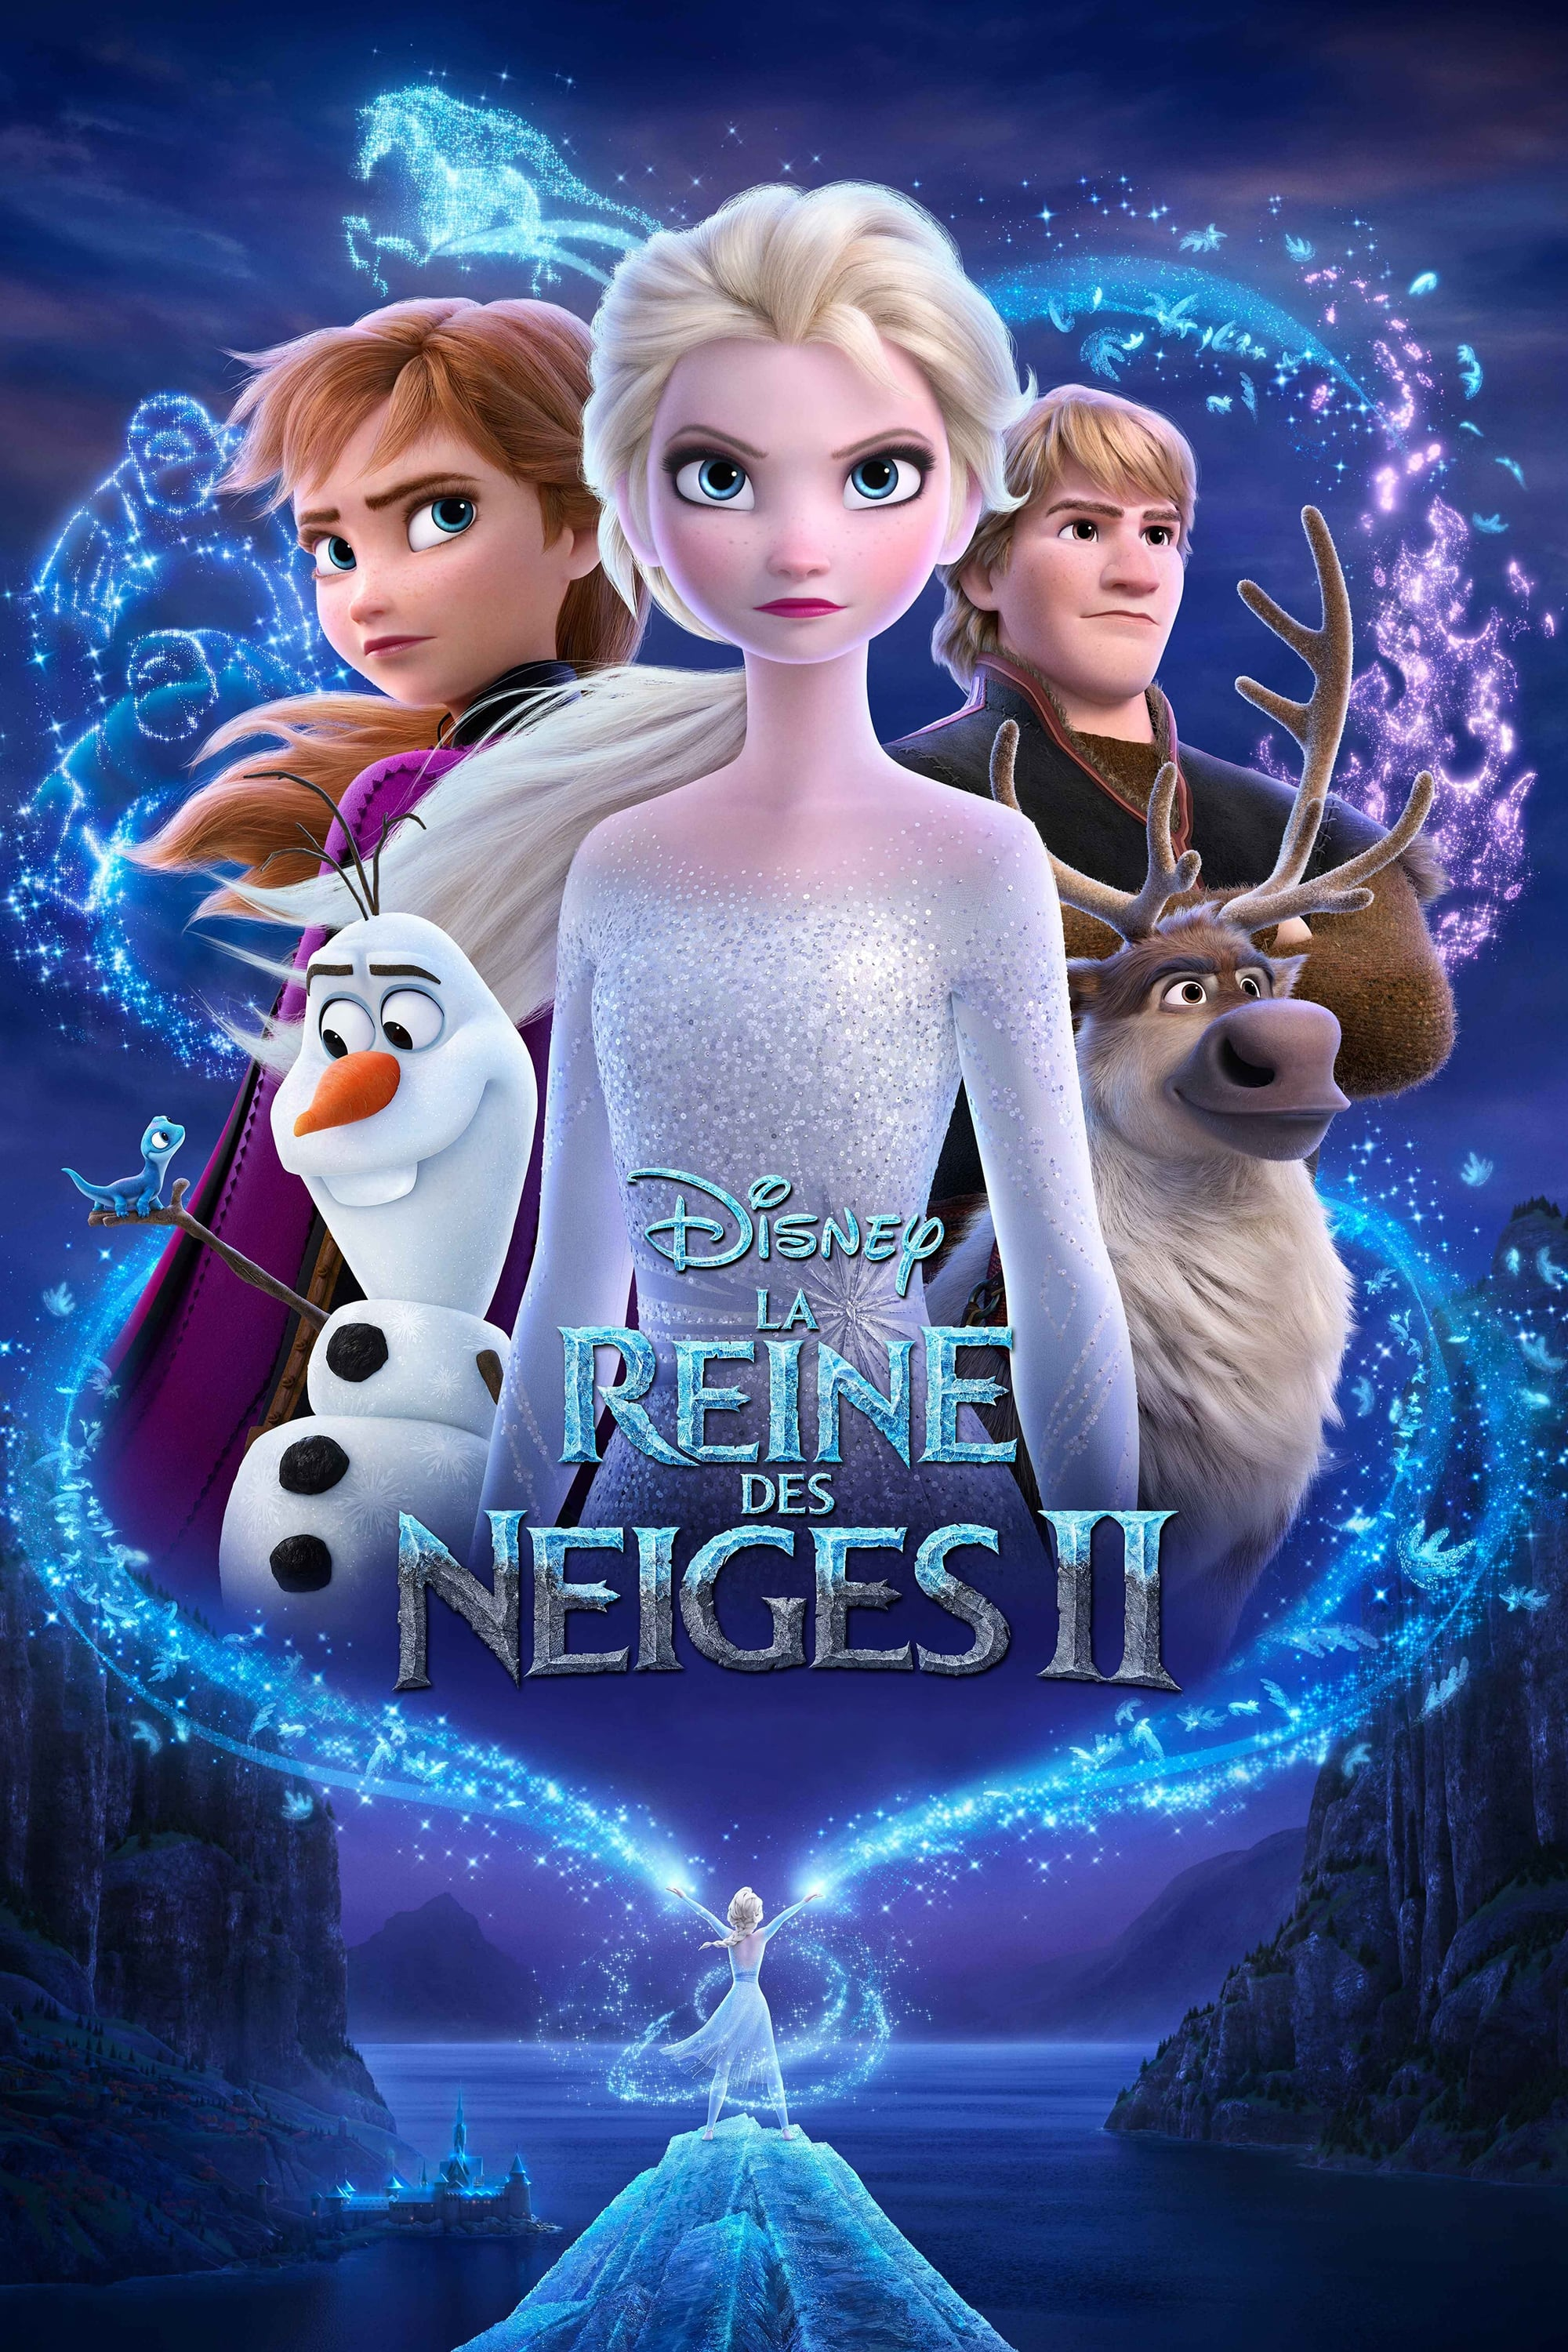 voir film La reine des neiges 2 streaming